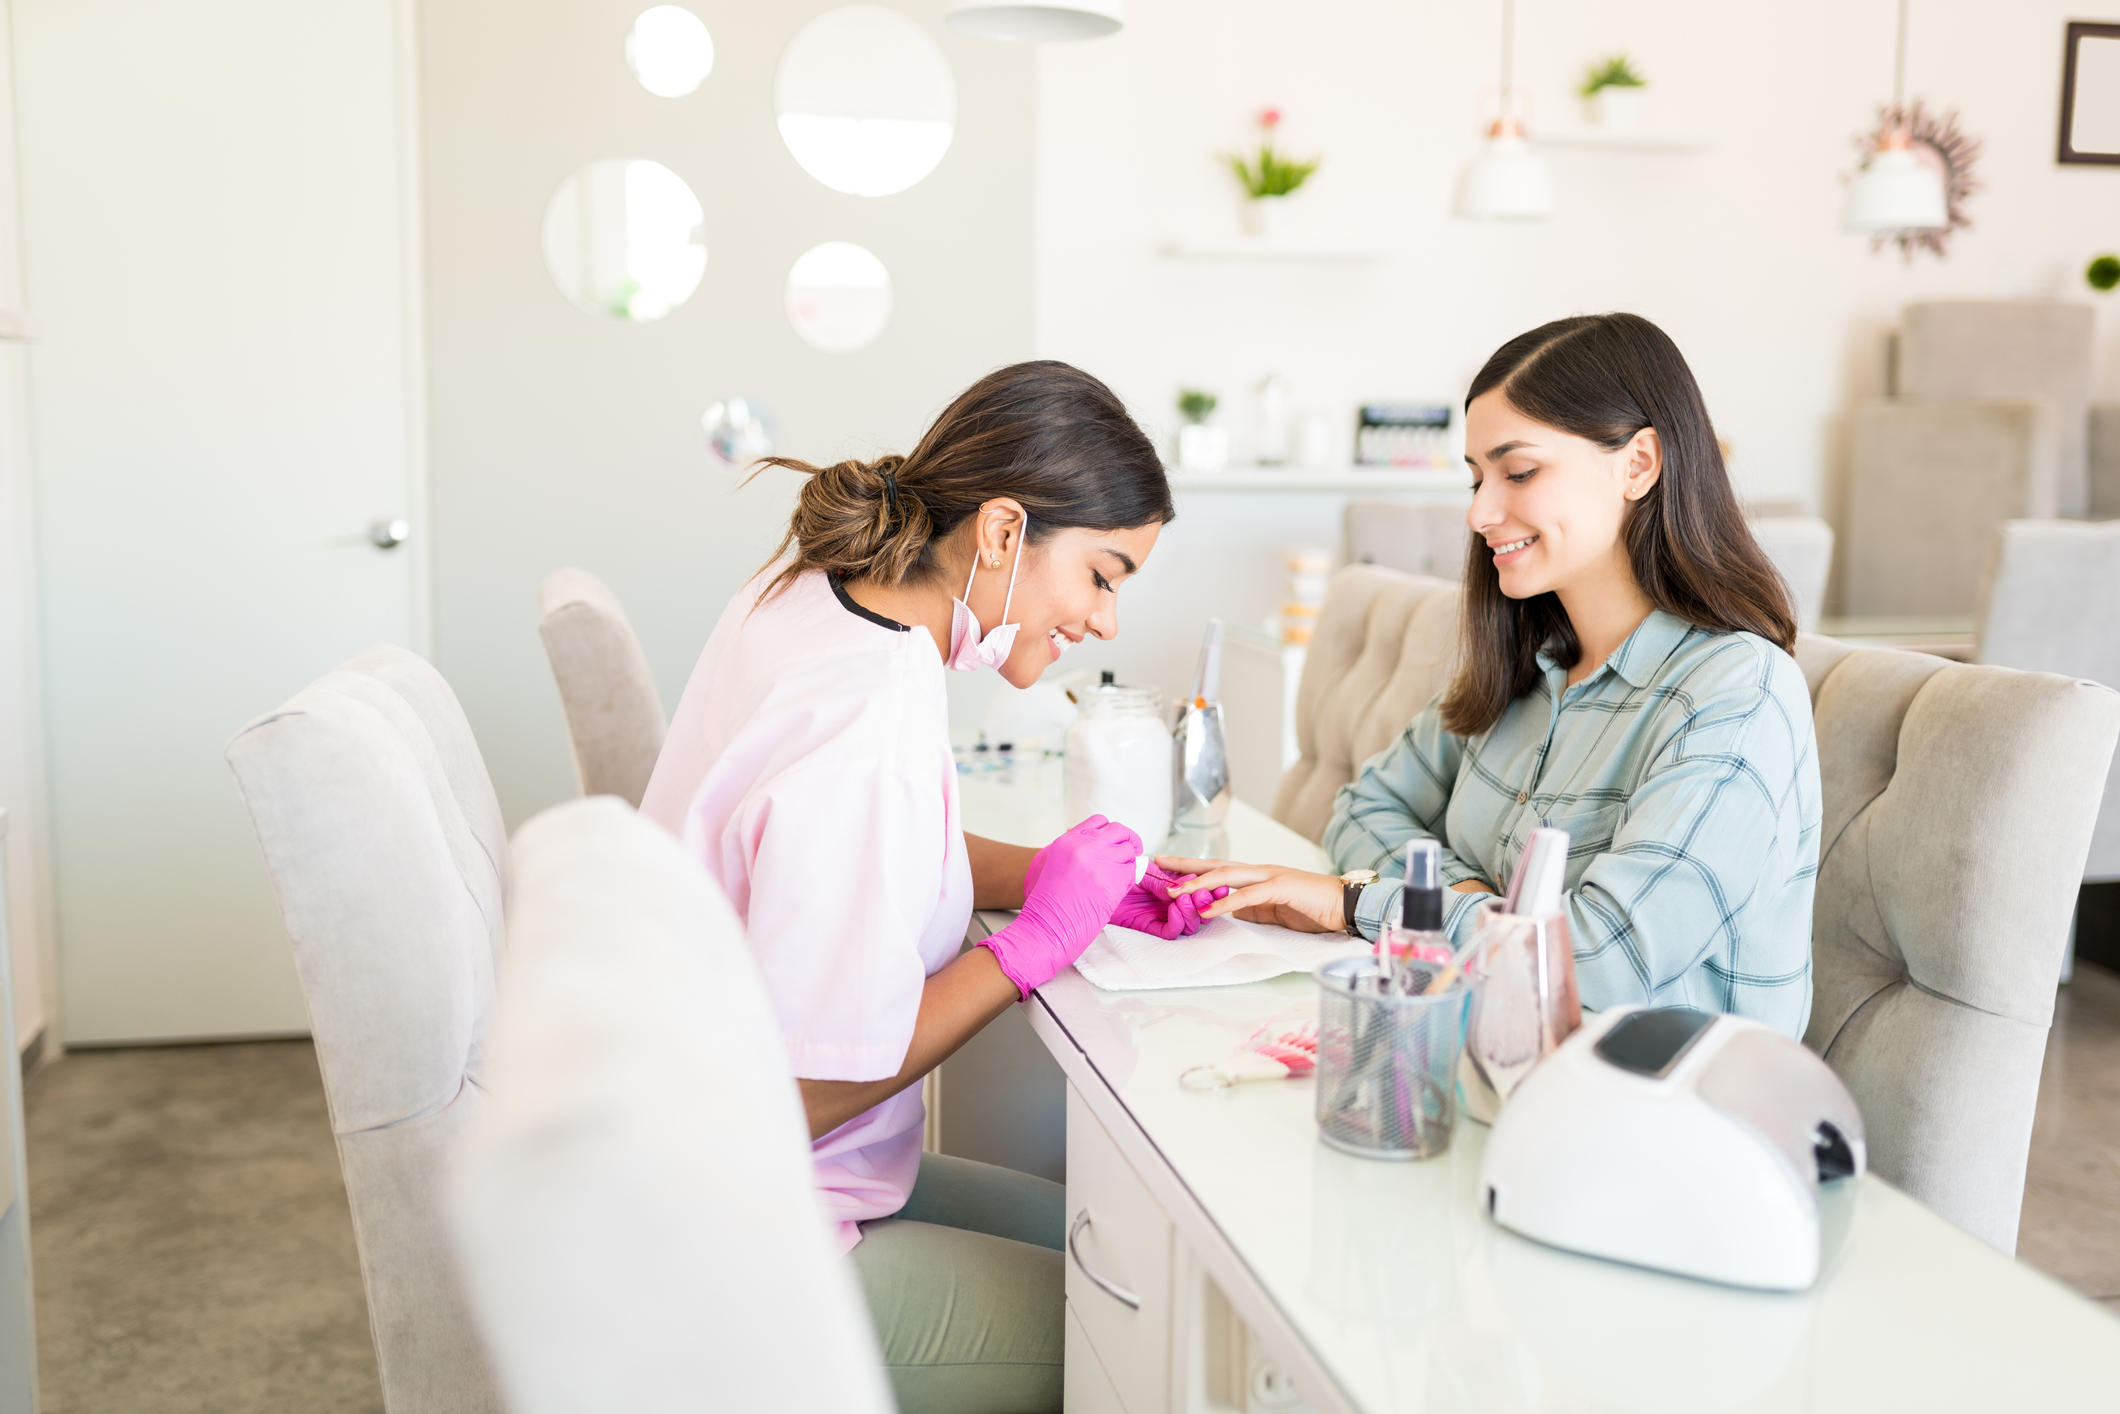 Smiling manicurist decorating nails with color on client's hand at beauty spa